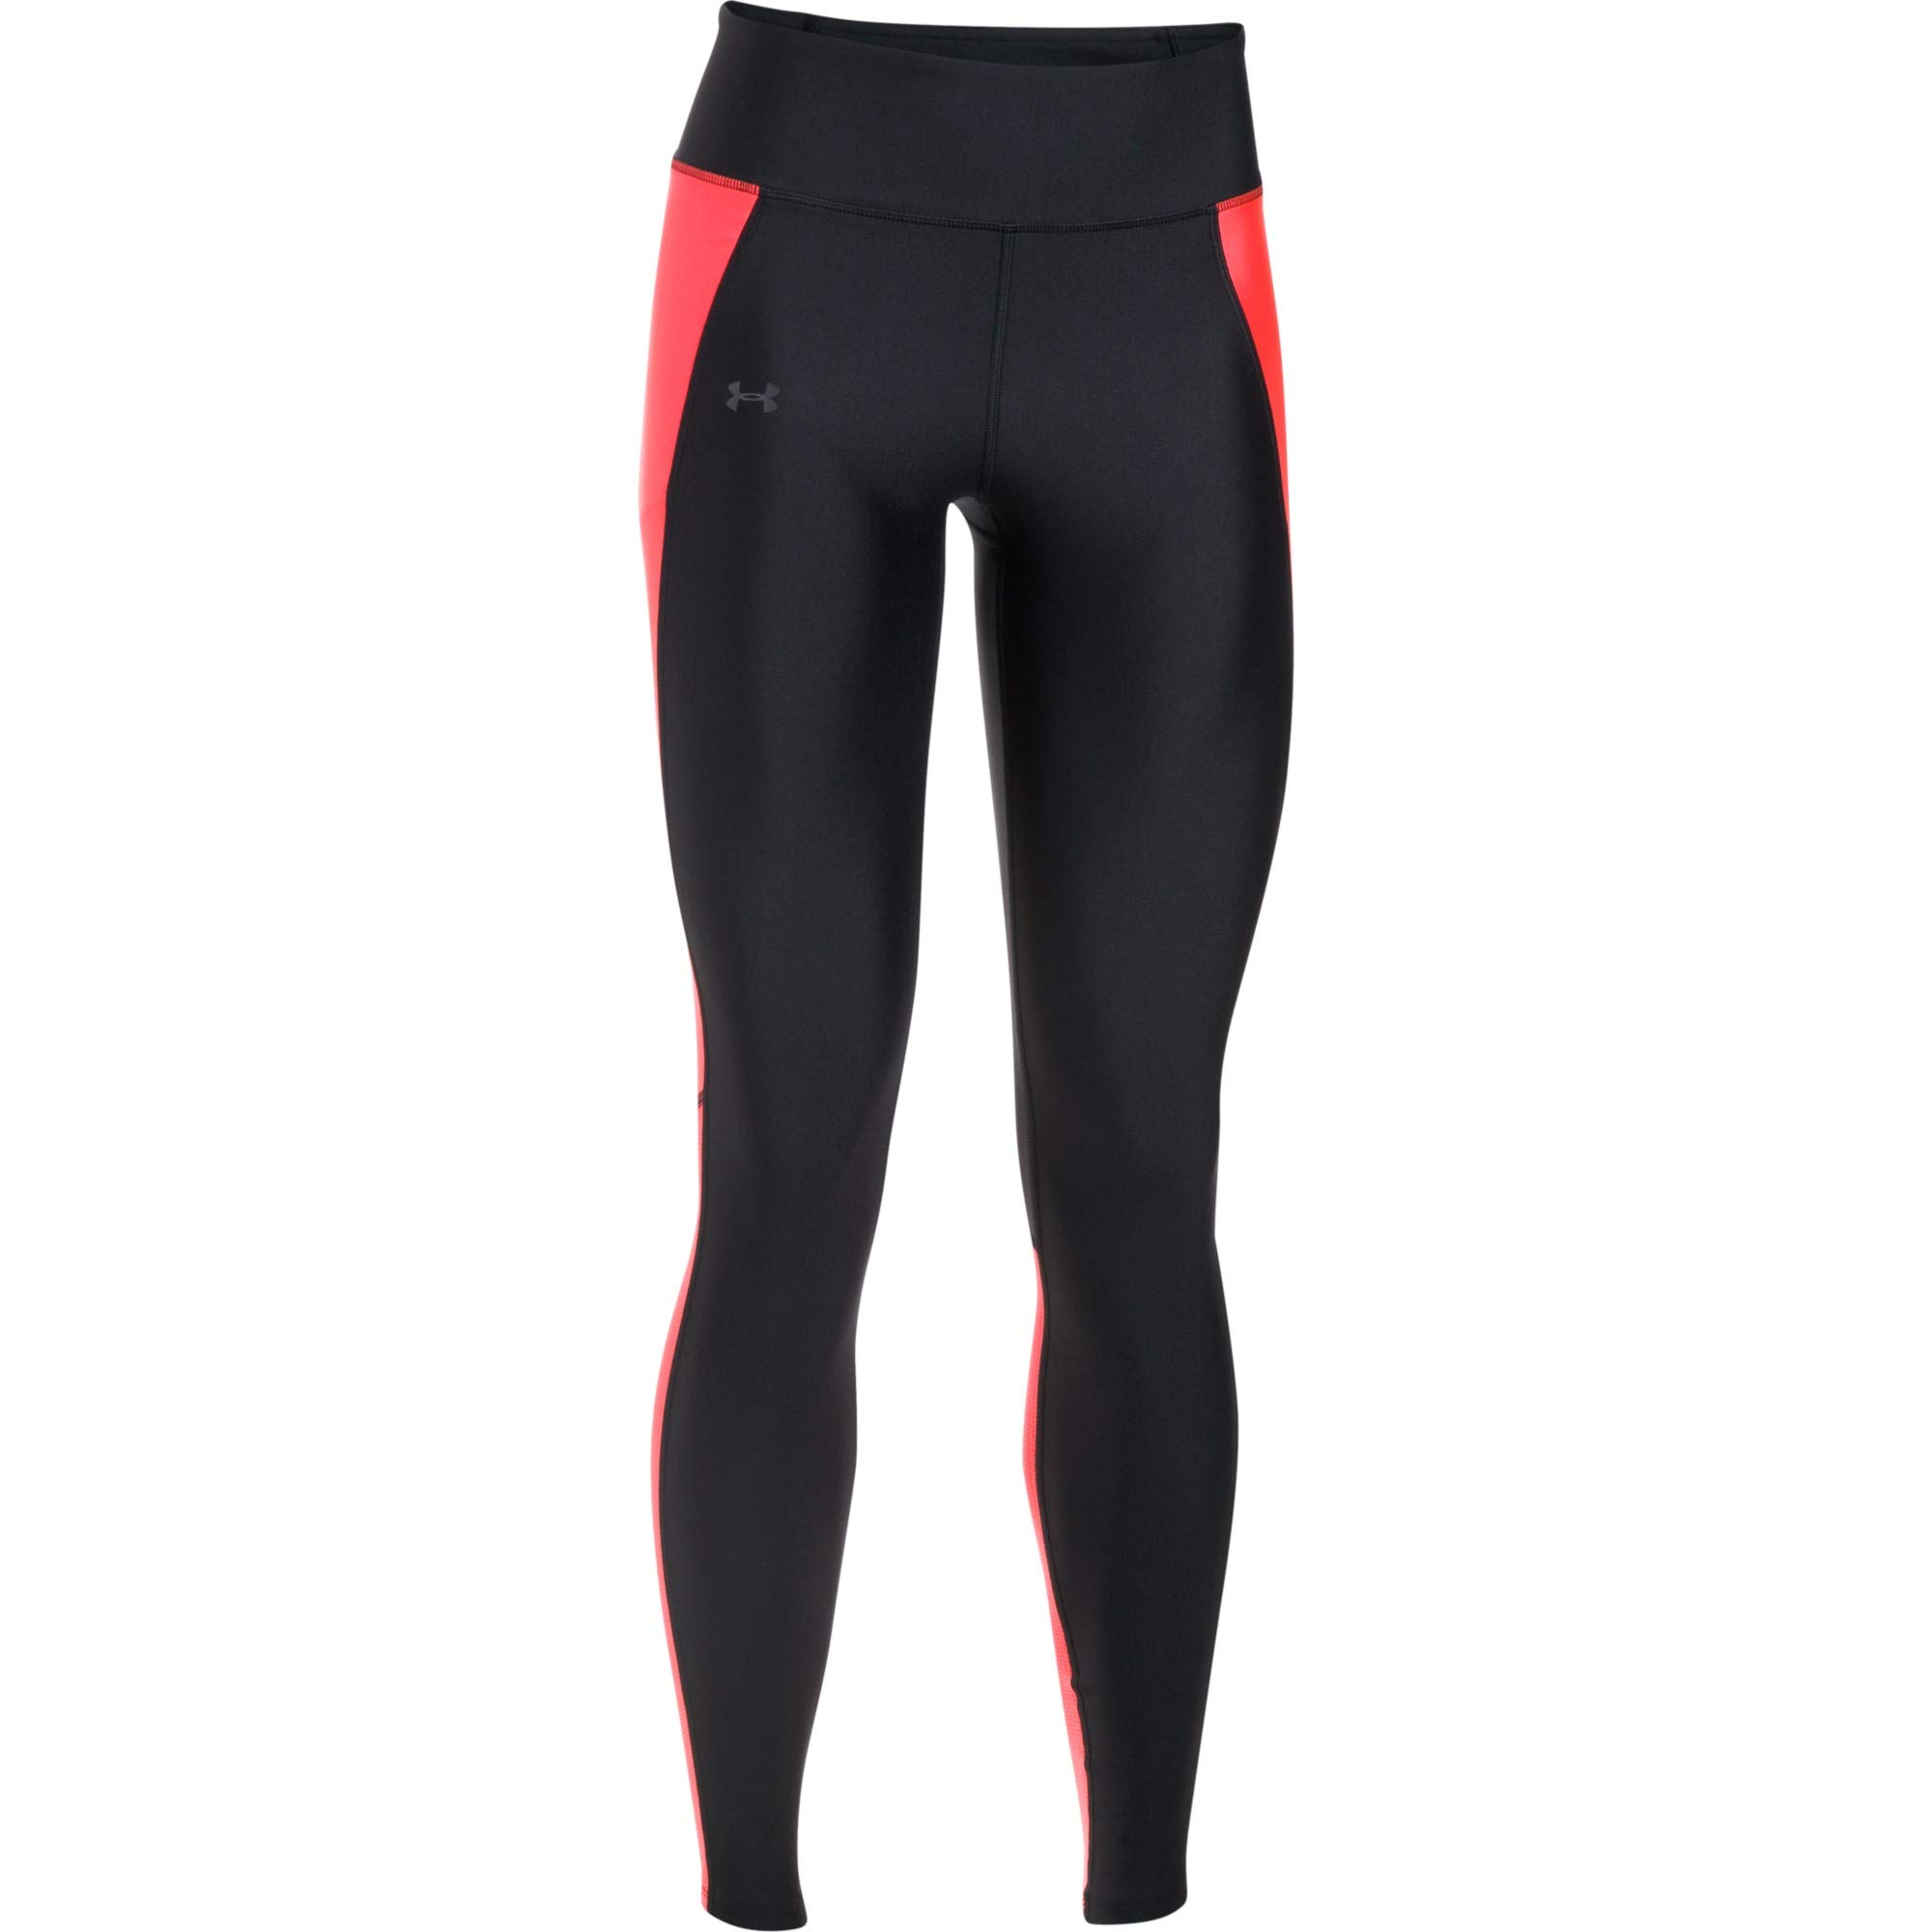 Under Armour Women's Fly-By Legging,Black /Reflective, X-Small